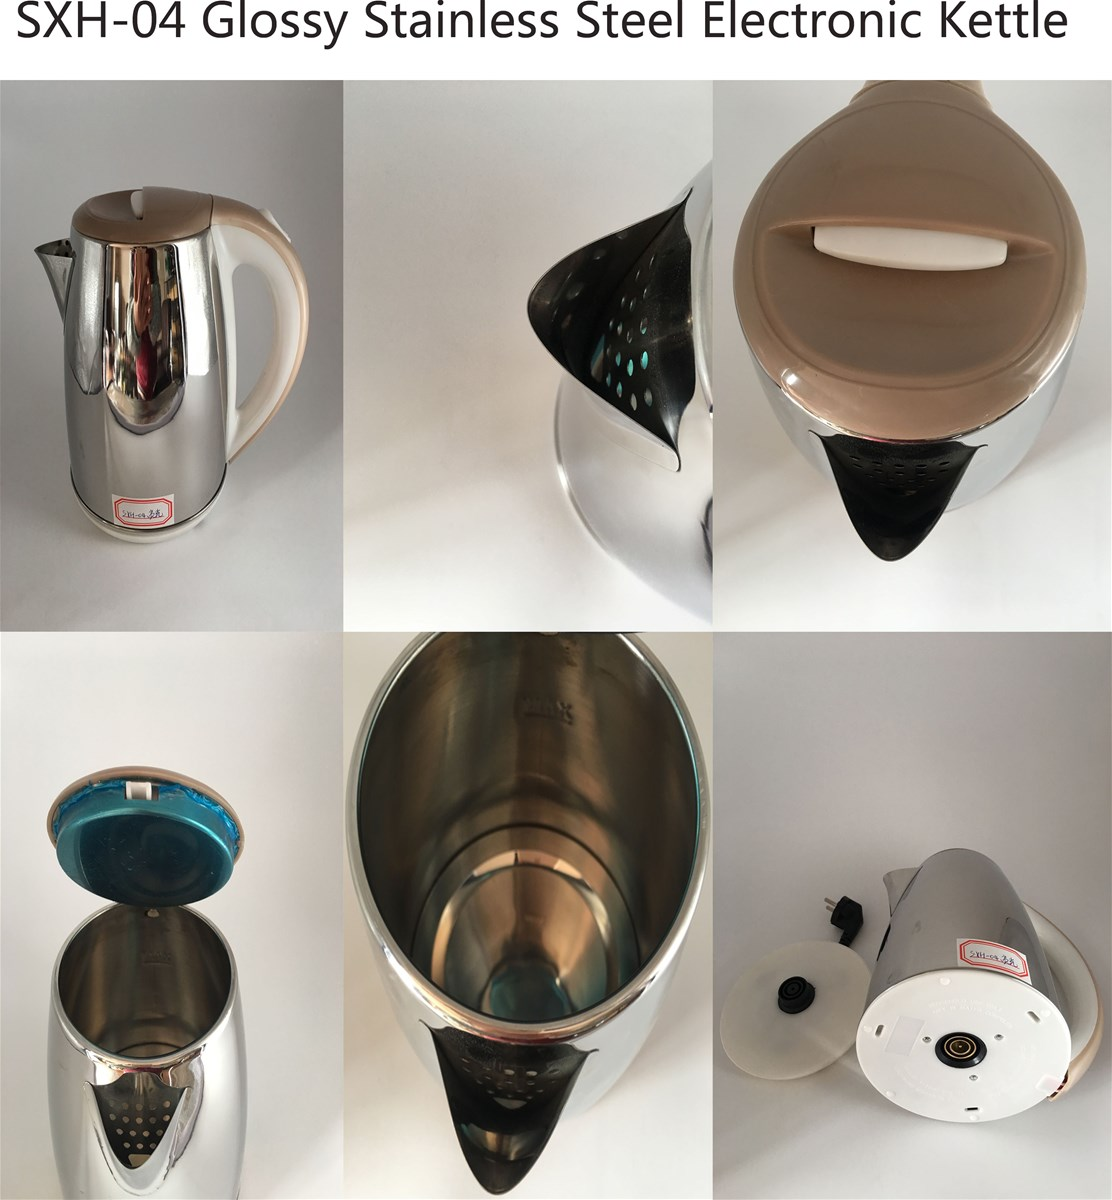 SXH04 Light Brown Fast Heating Glossy Stainless Steel Electronic Kettle with Flashing Light 18L